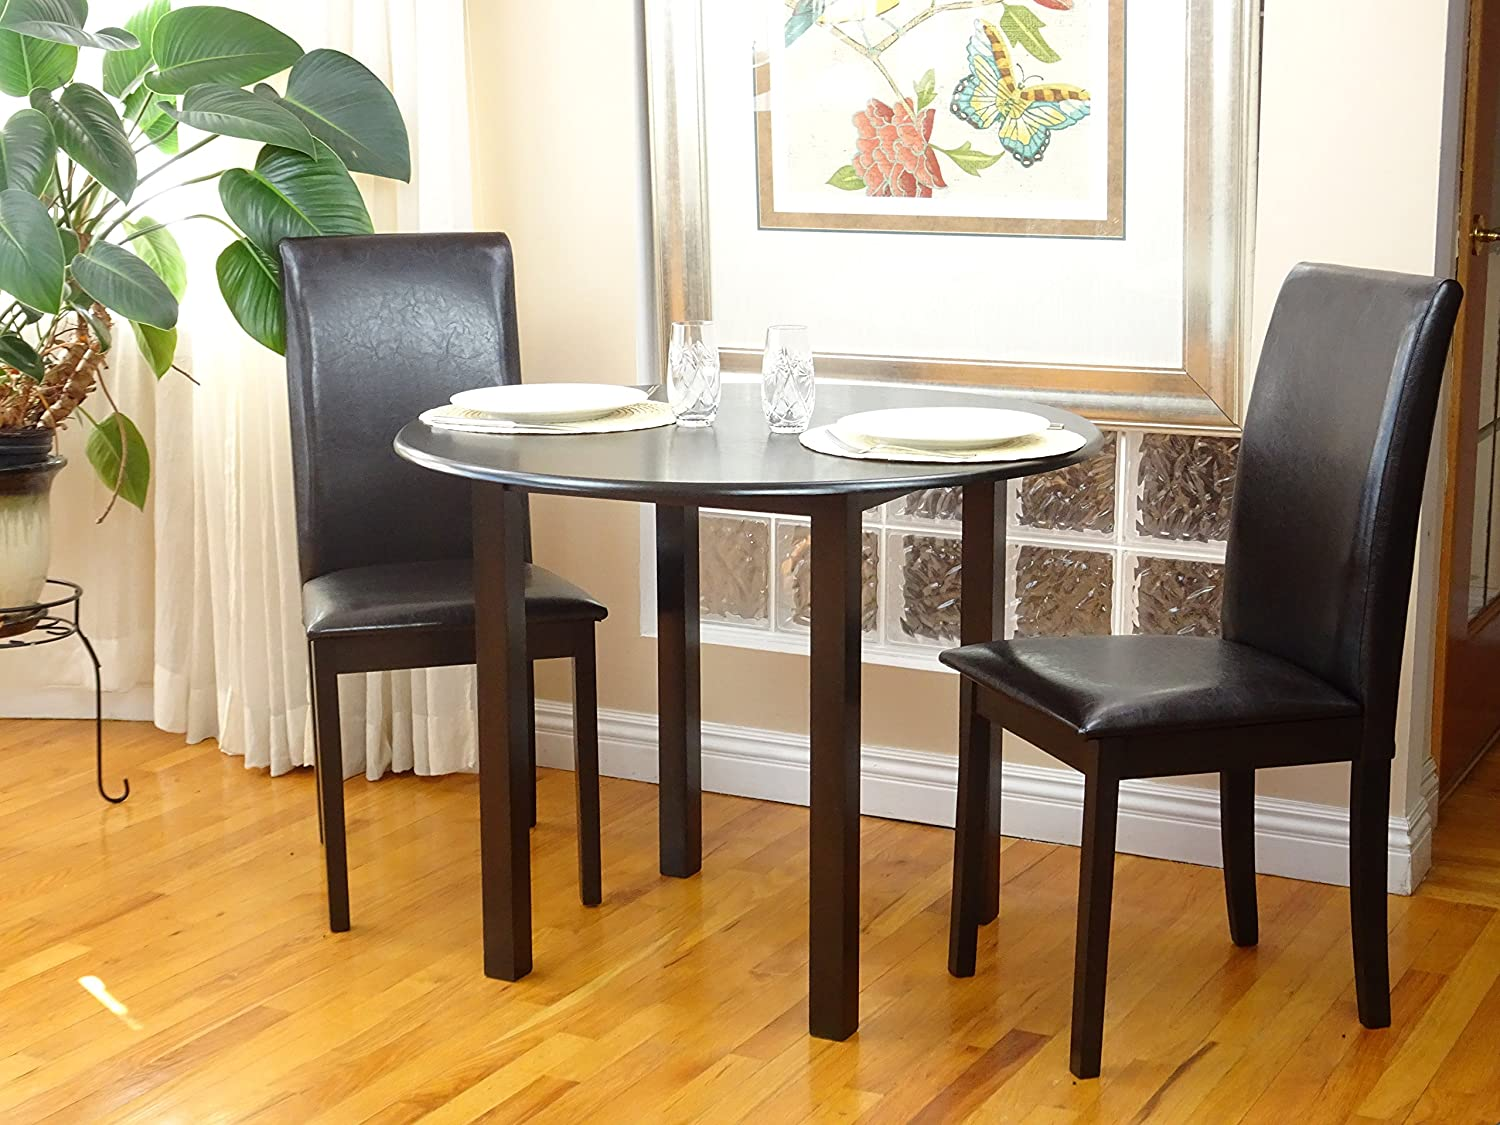 Rattan Wicker Furniture Dining Kitchen Set 3 Pcs Classic Round Table and 2 Solid Wooden Chairs Fallabella Espresso Black Finish